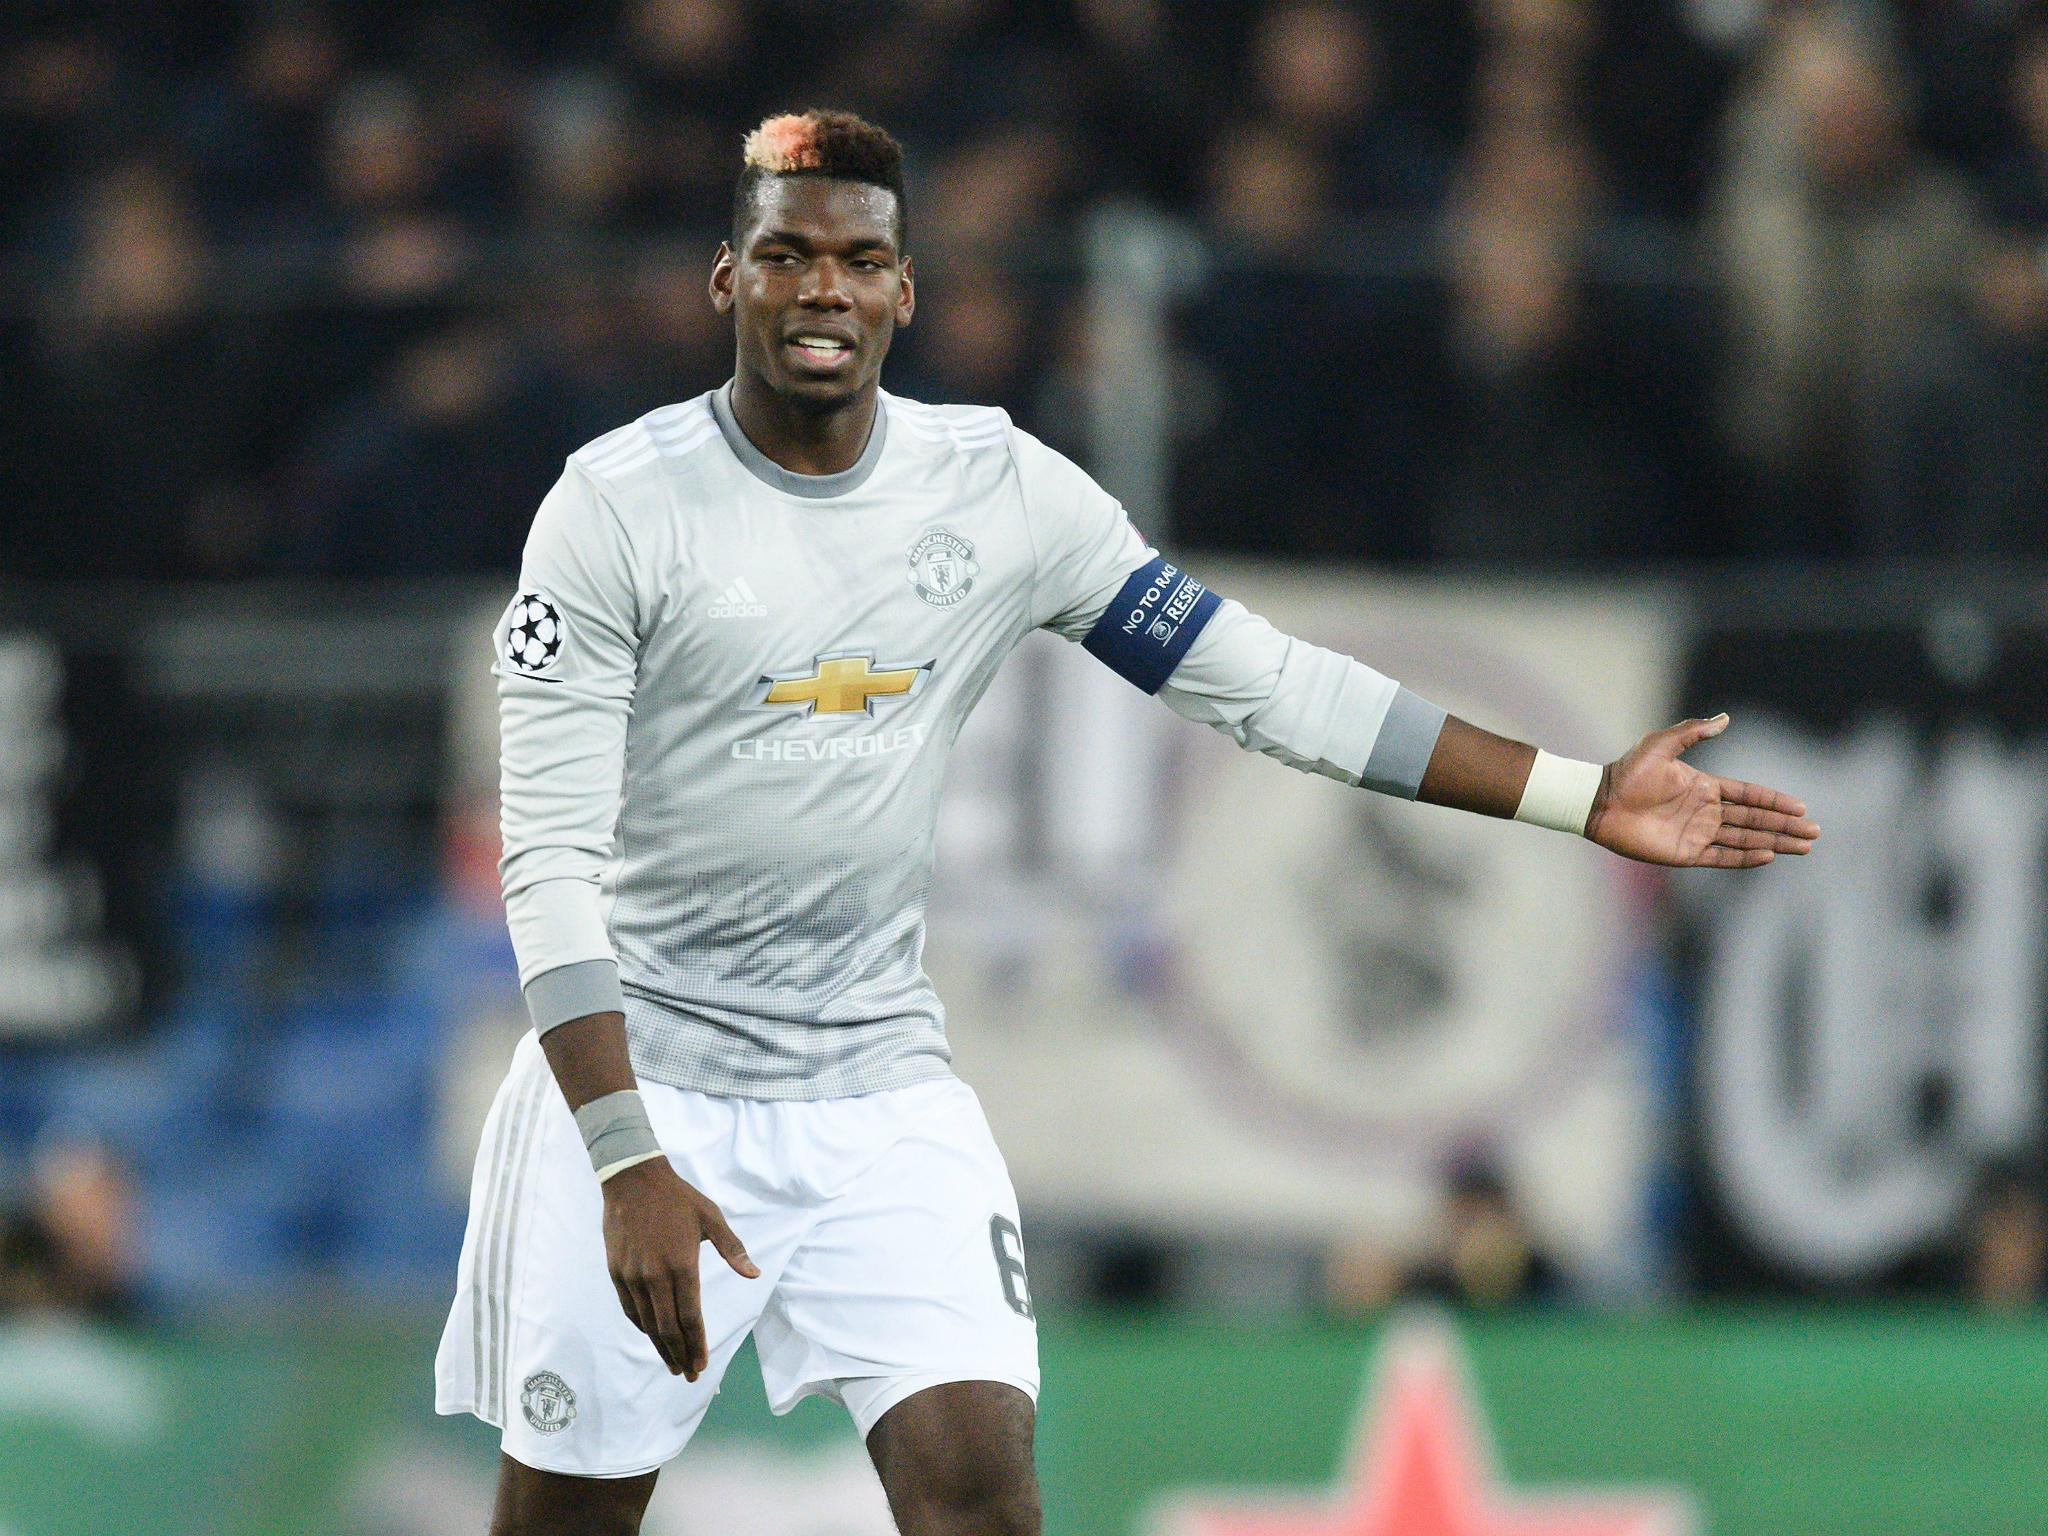 Paul Pogba's up-and-down display symbolises Manchester United's lack of cohesion, purpose and direction